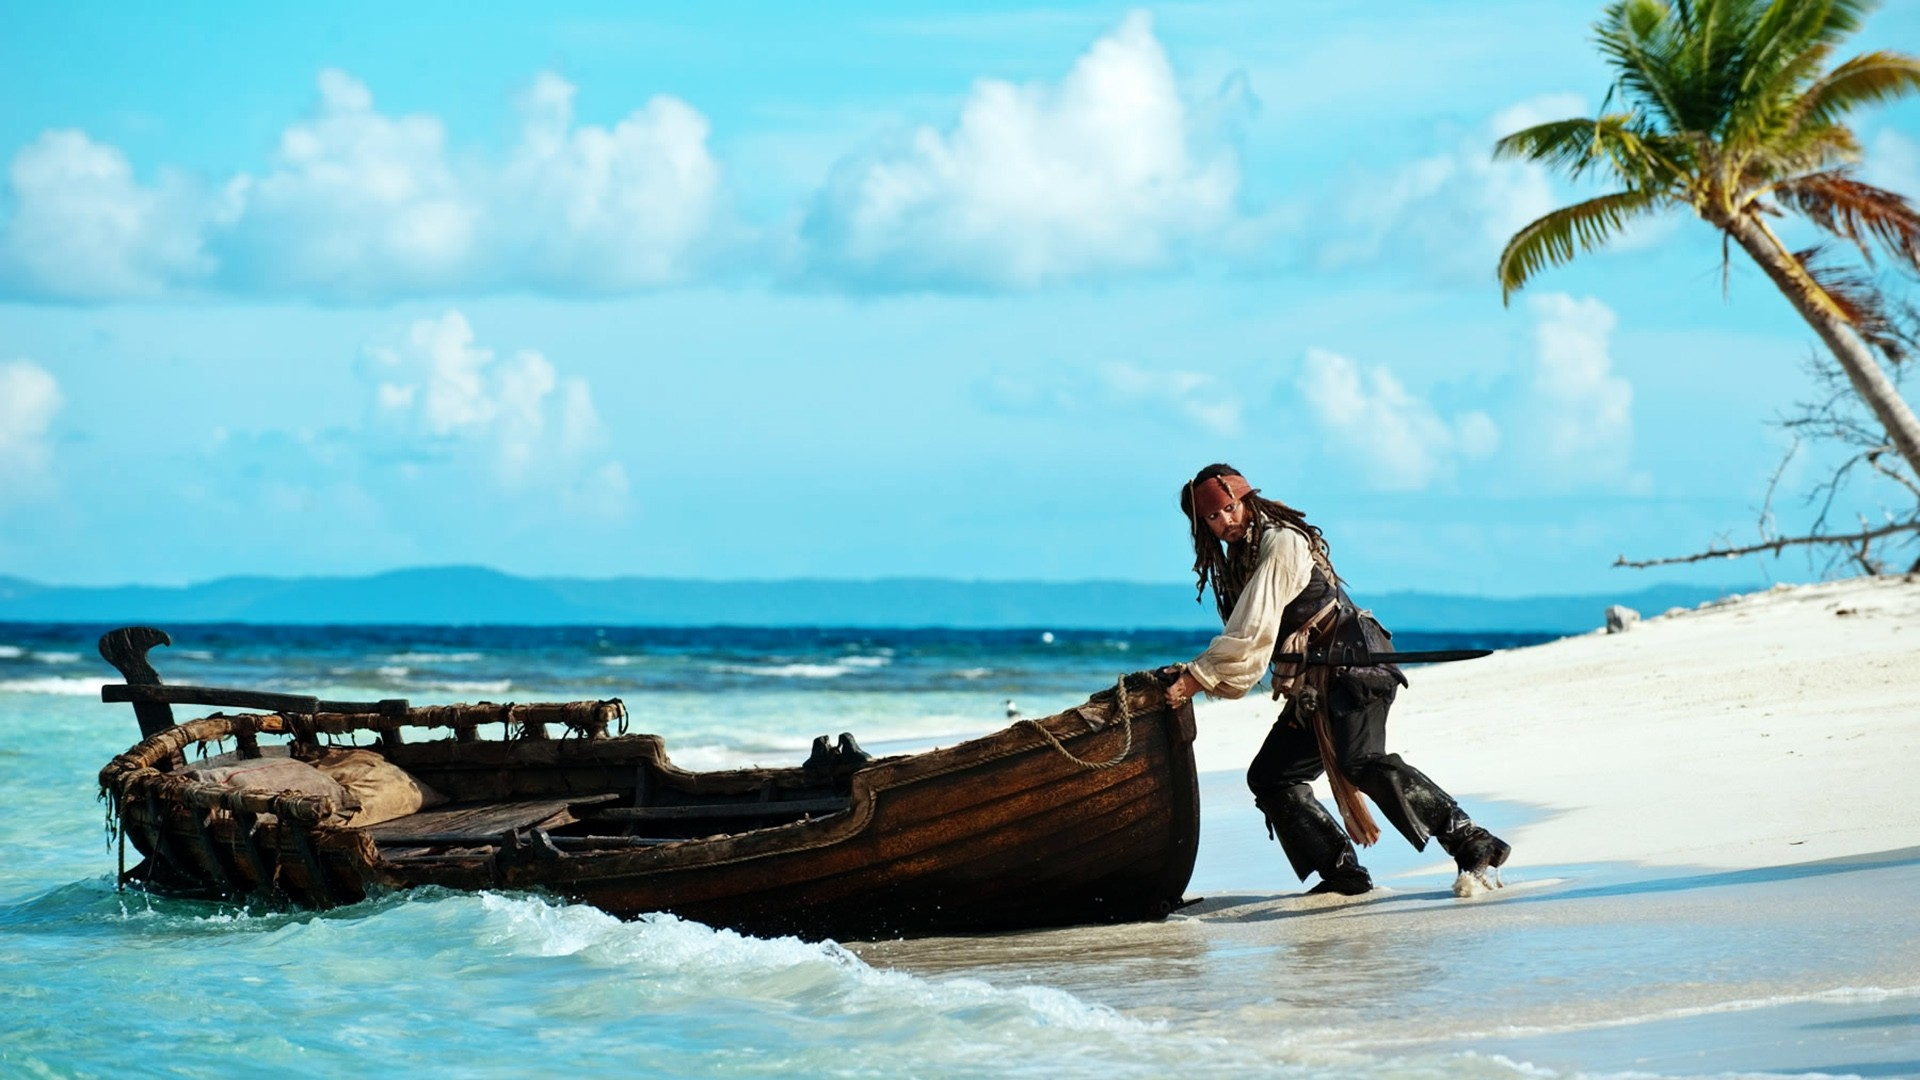 Jack Sparrow and boat wallpaper from the movie Pirates of the Caribbean